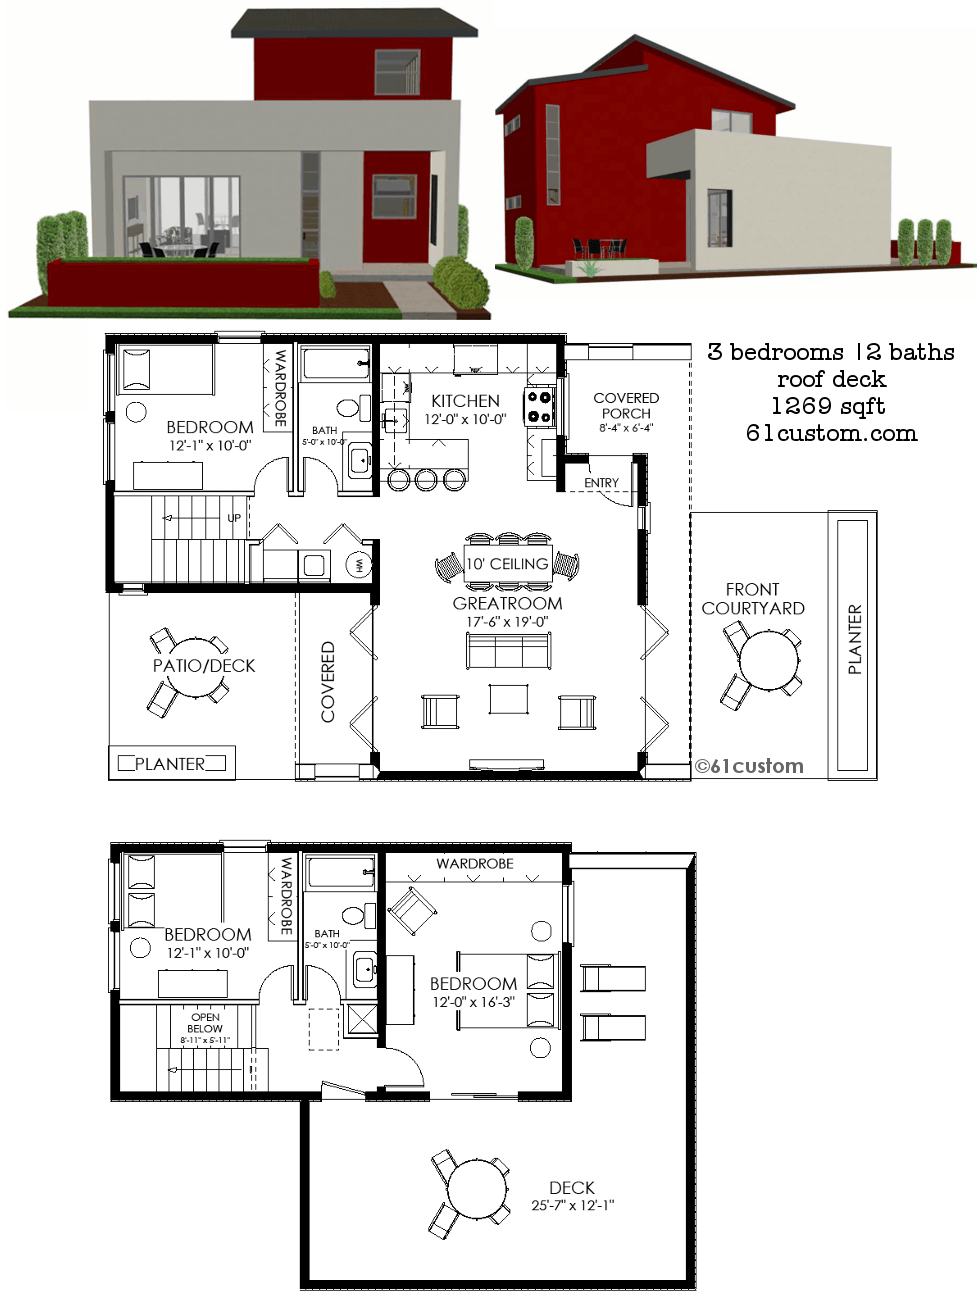 Contemporary small house plan 61custom contemporary modern small modern house plan 1269 61custom ccuart Choice Image